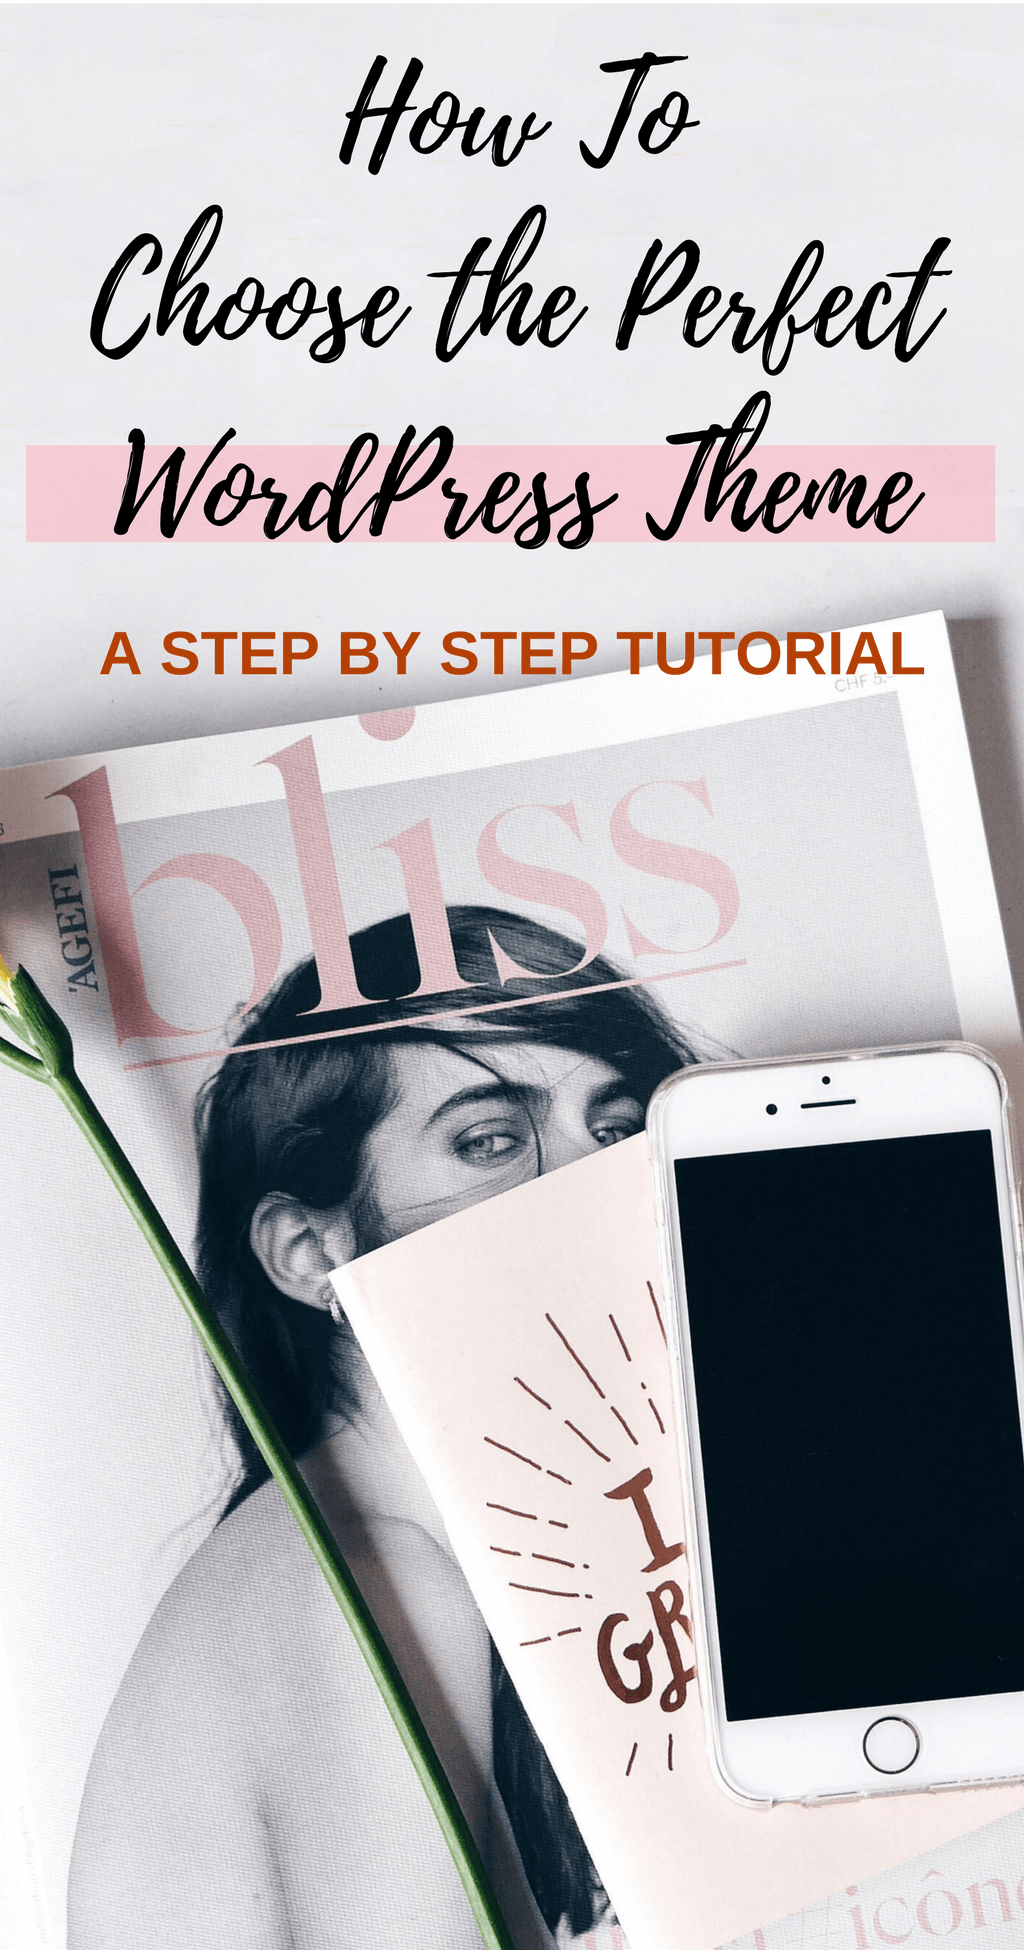 Learn How to Choose The Perfect WordPress Theme for Your Website - with this easy step by step guide + learn how to install the theme in 2 minutes! click through for the full guide @ hedonistit.com